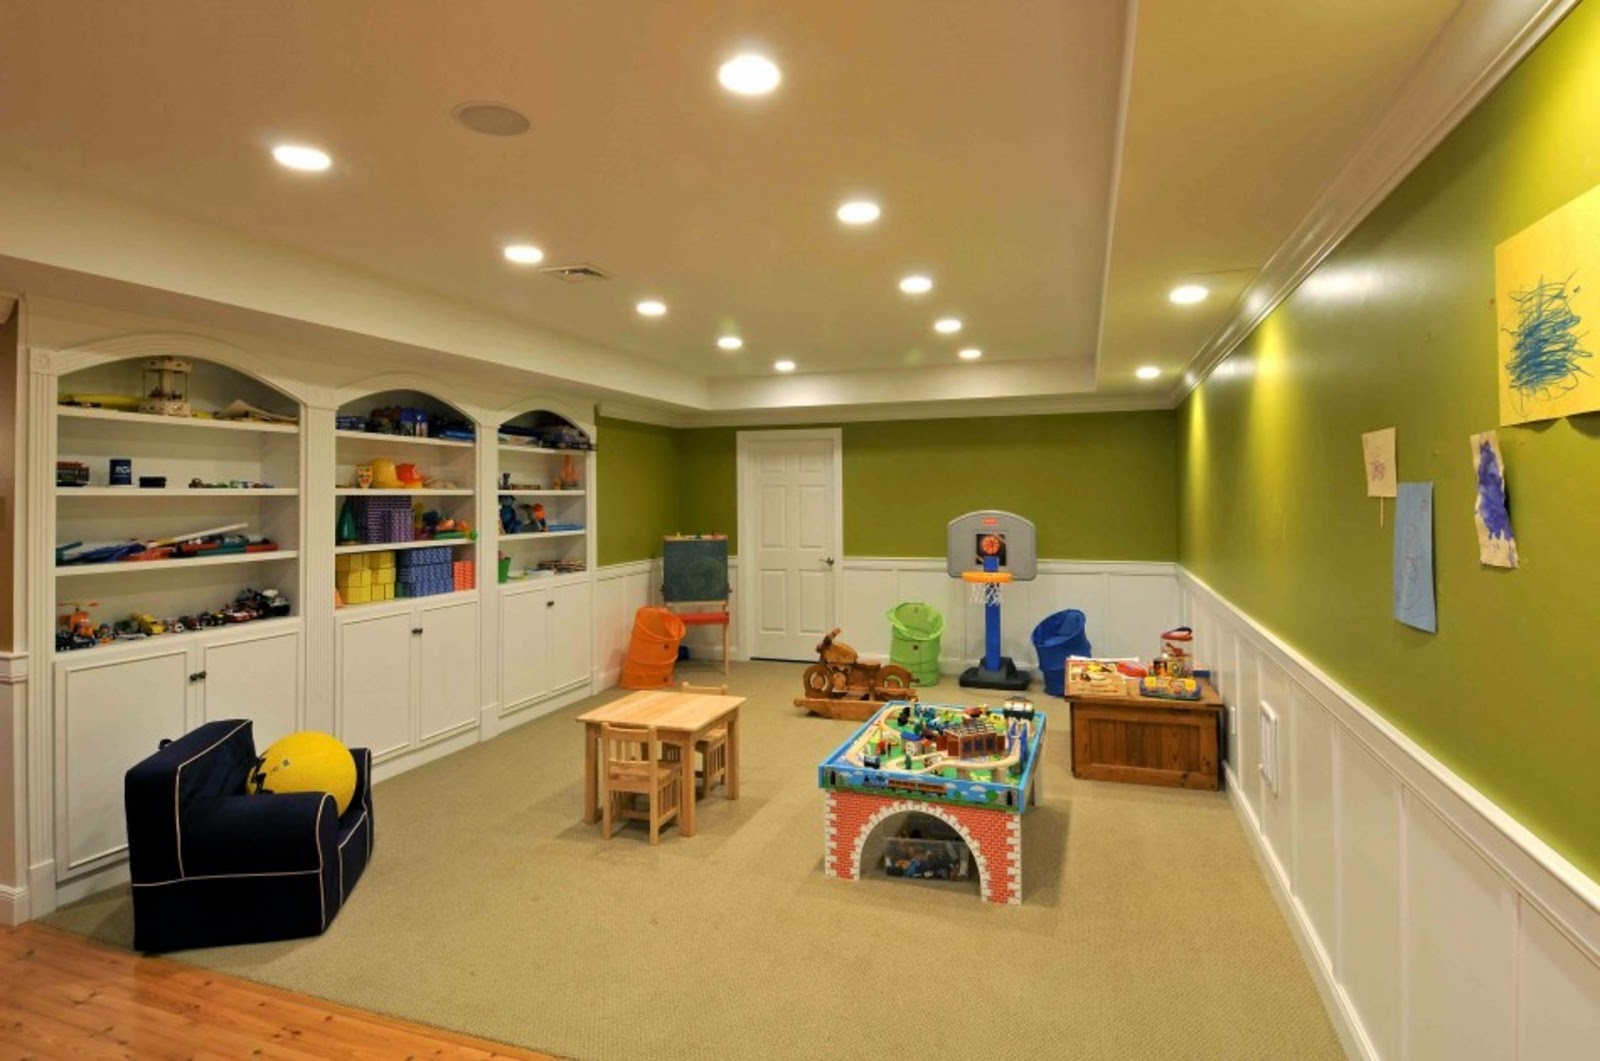 16 creative basement ceiling ideas for your basement Ideas for a small basement